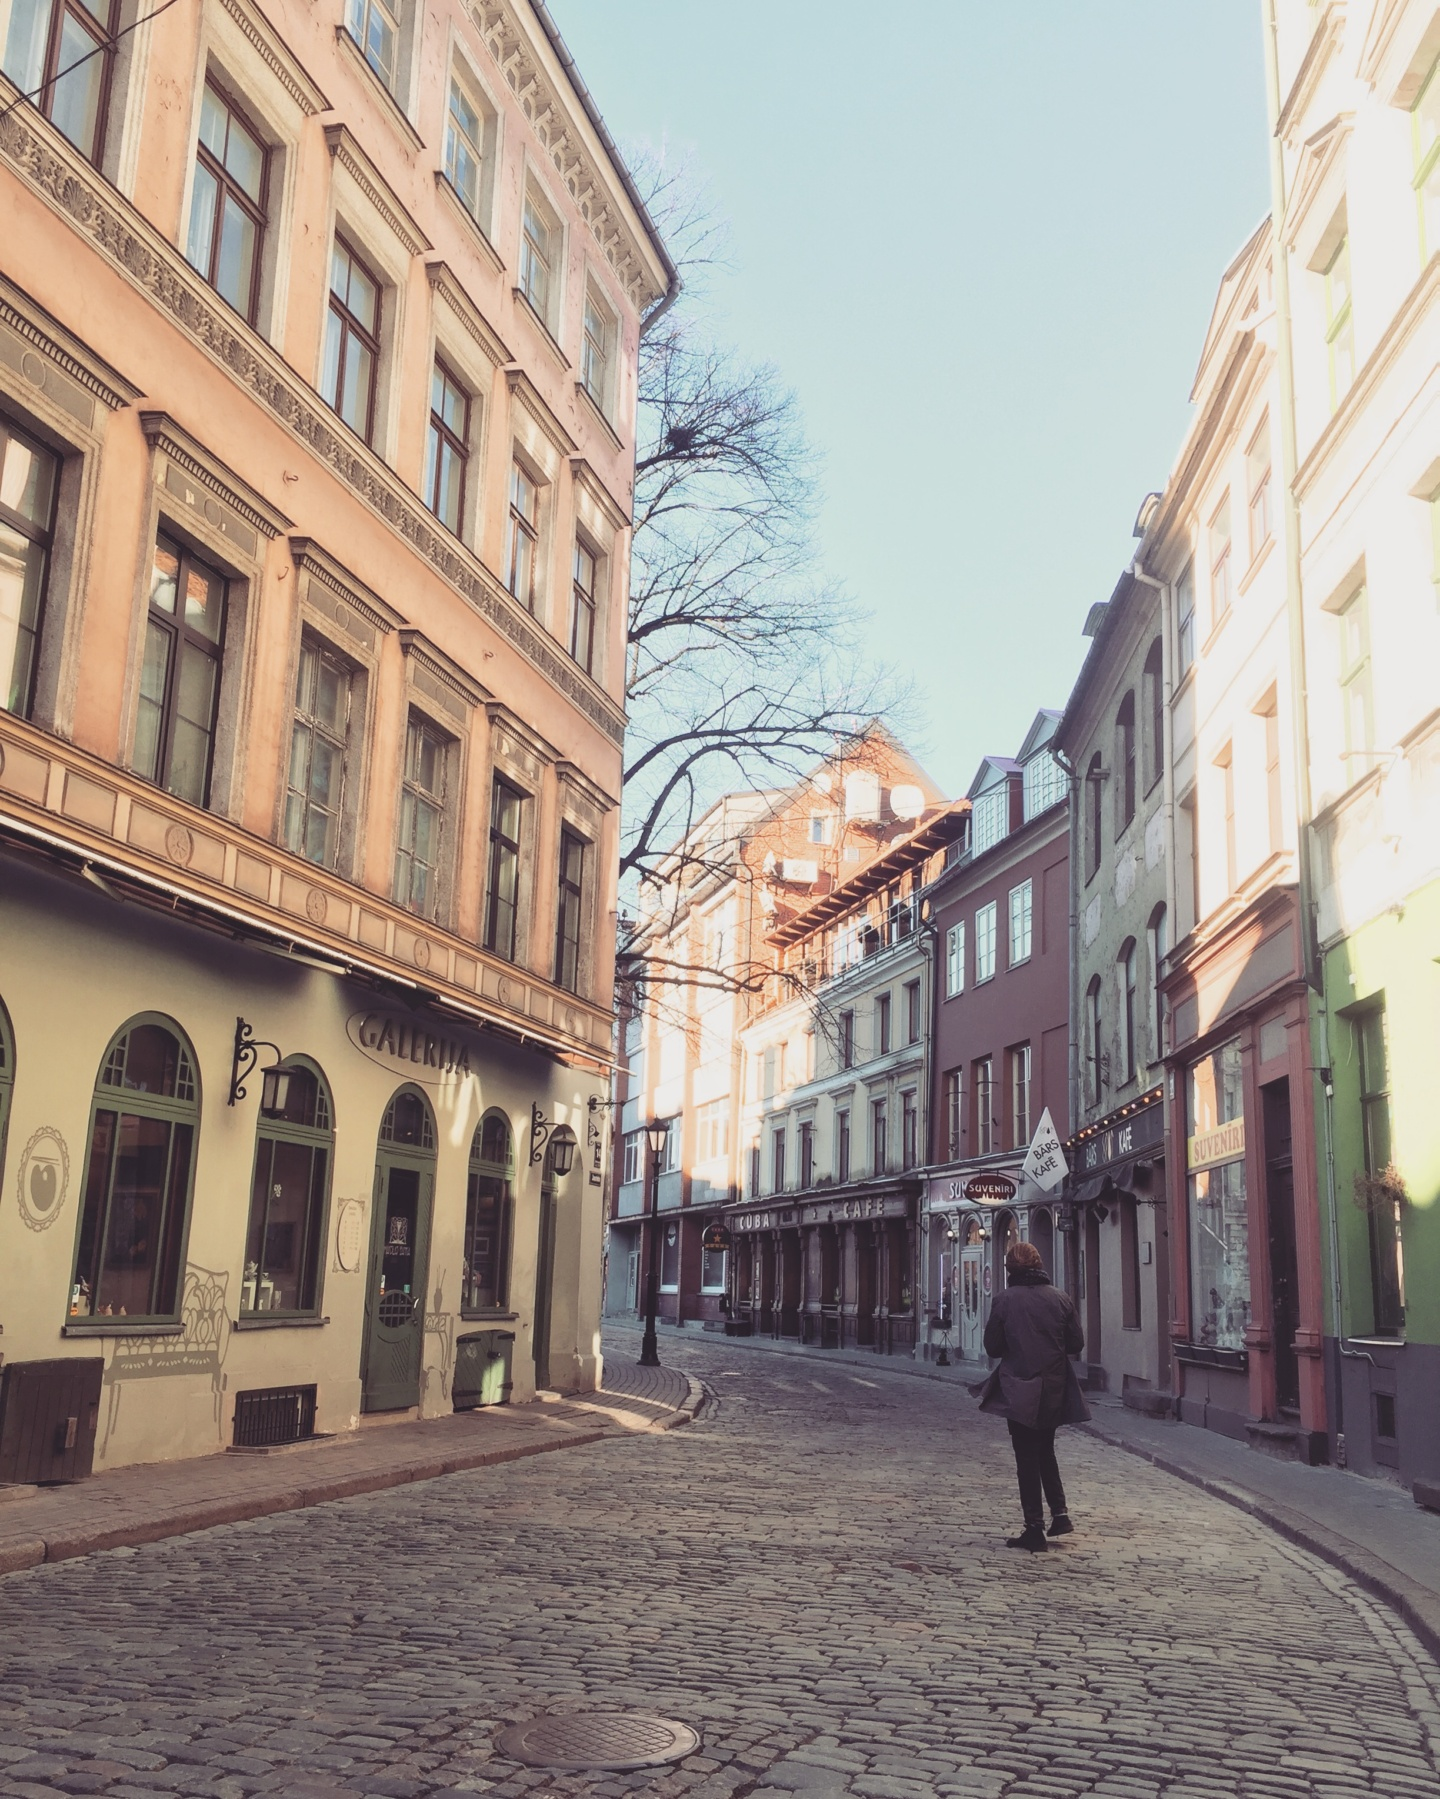 Europe | Day 1 in Riga, Latvia